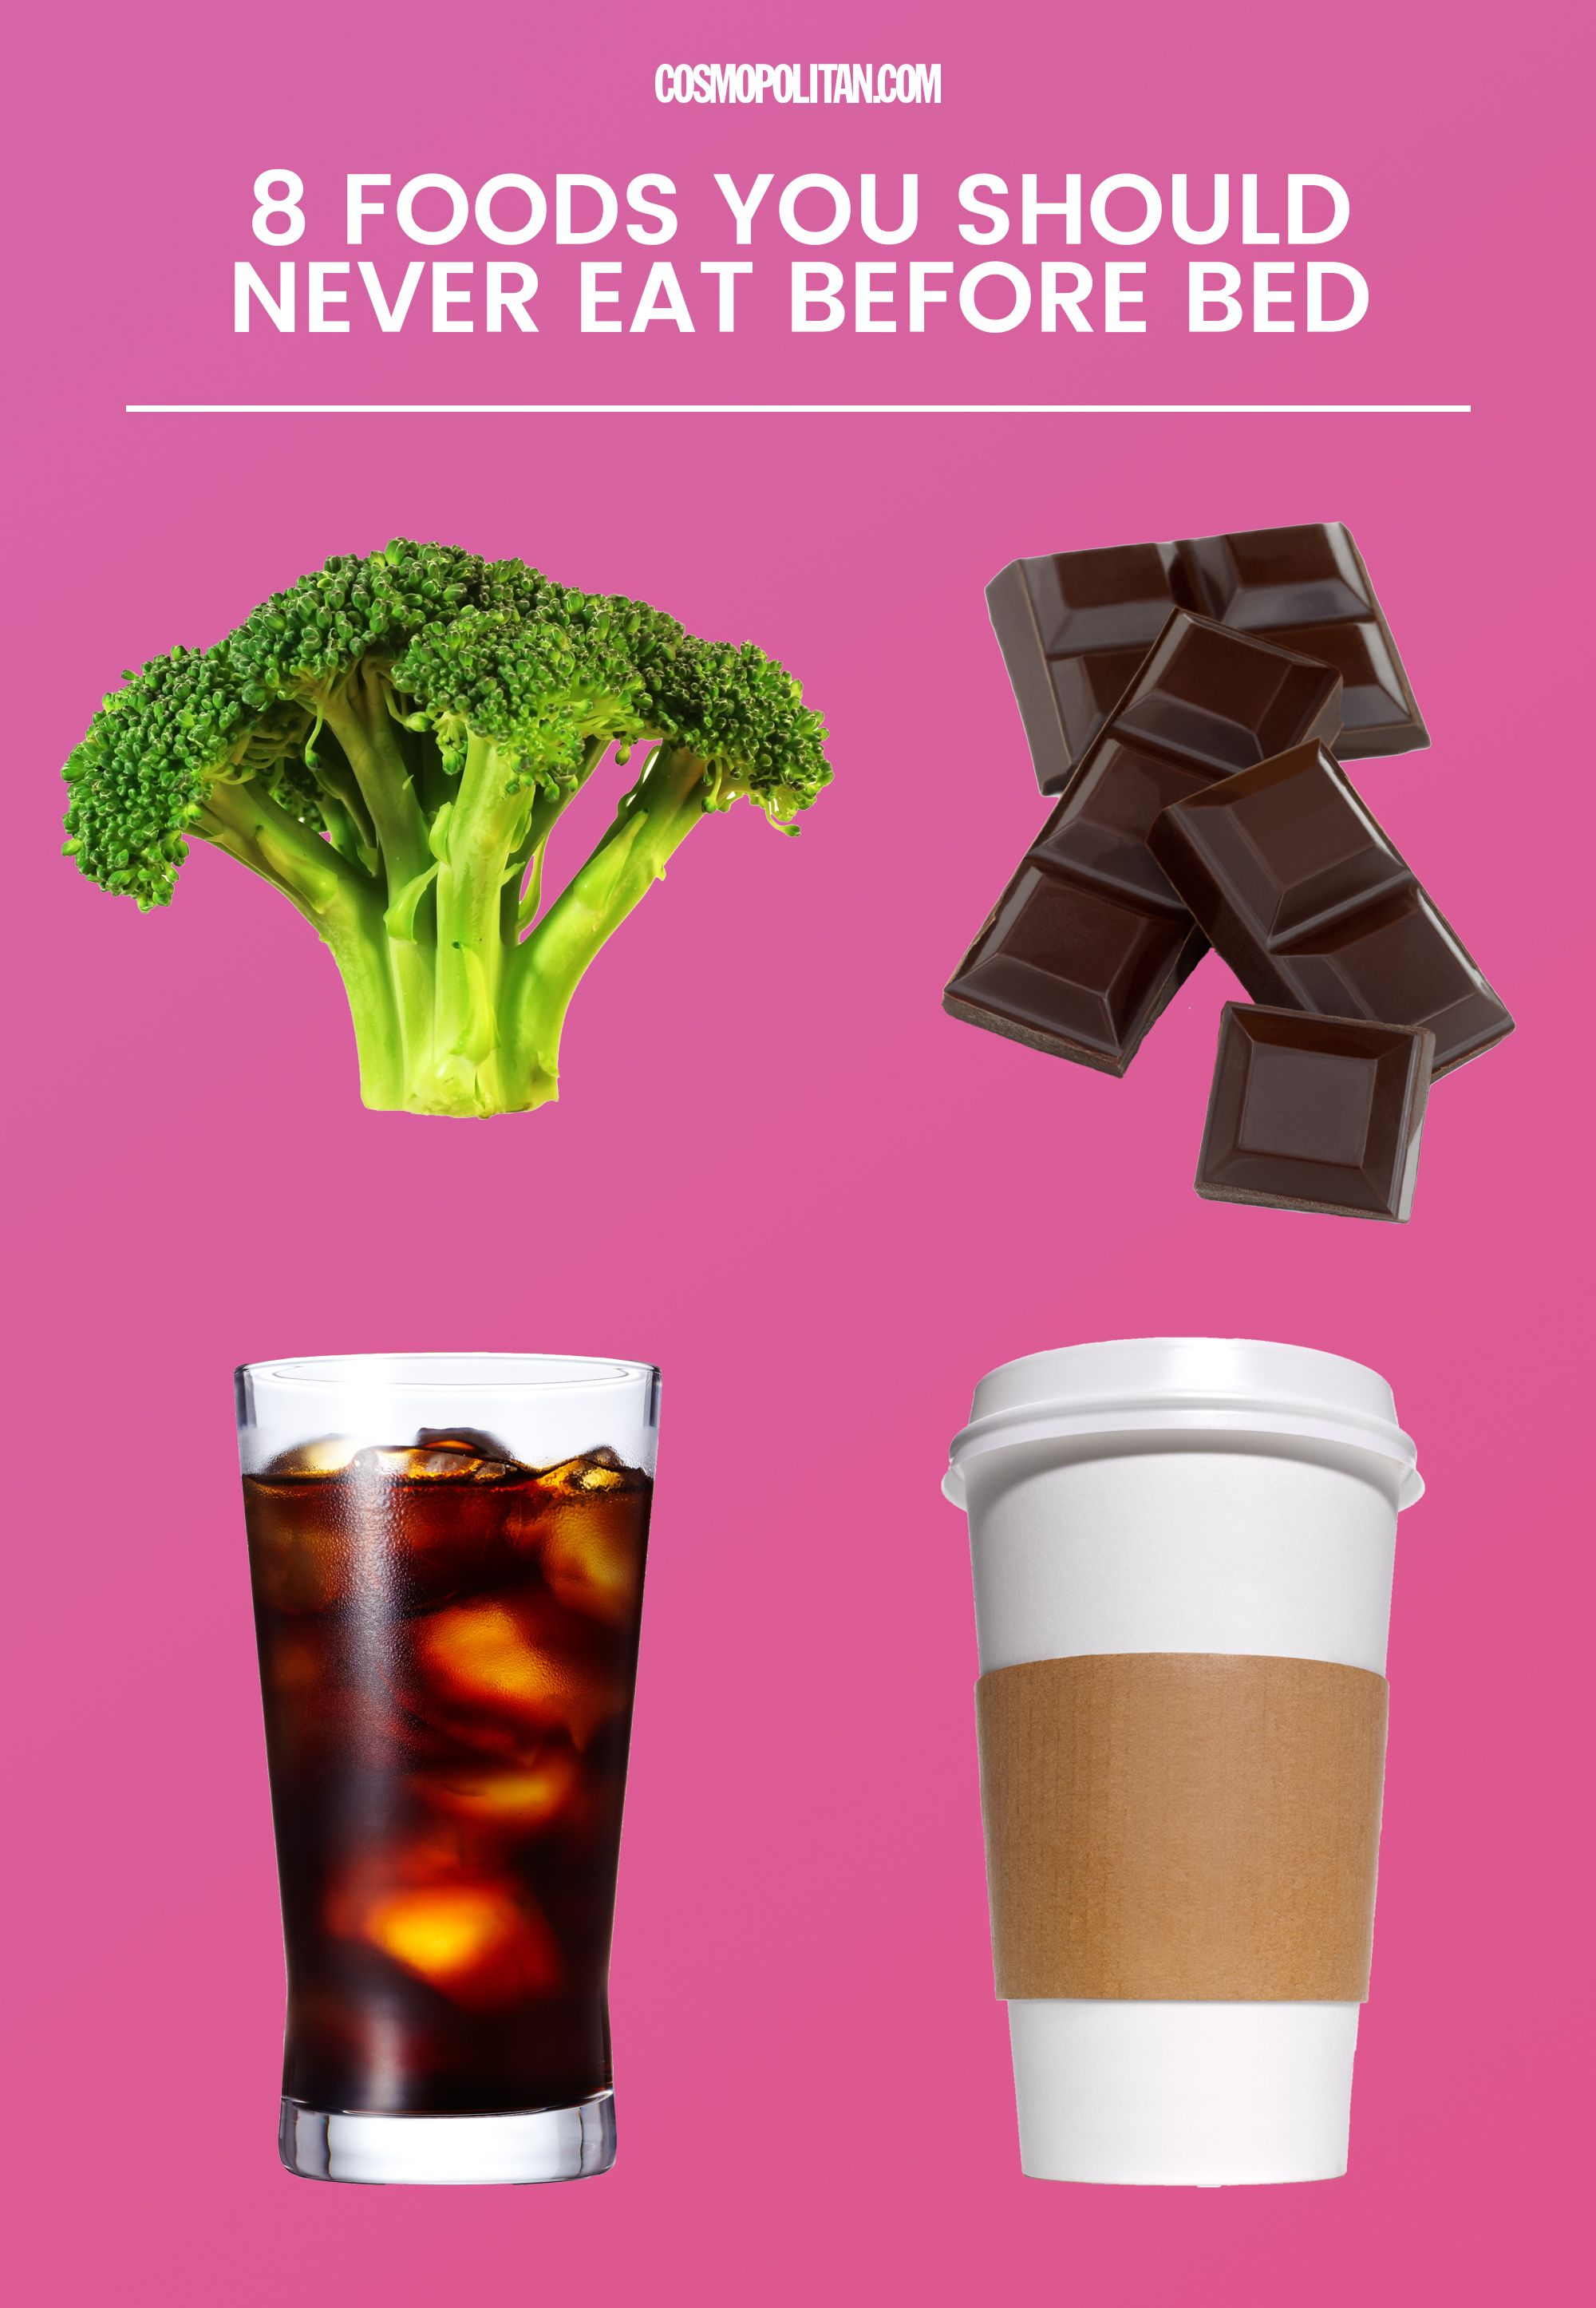 8 foods you should never eat before a workout 8 foods you should never eat before a workout new images